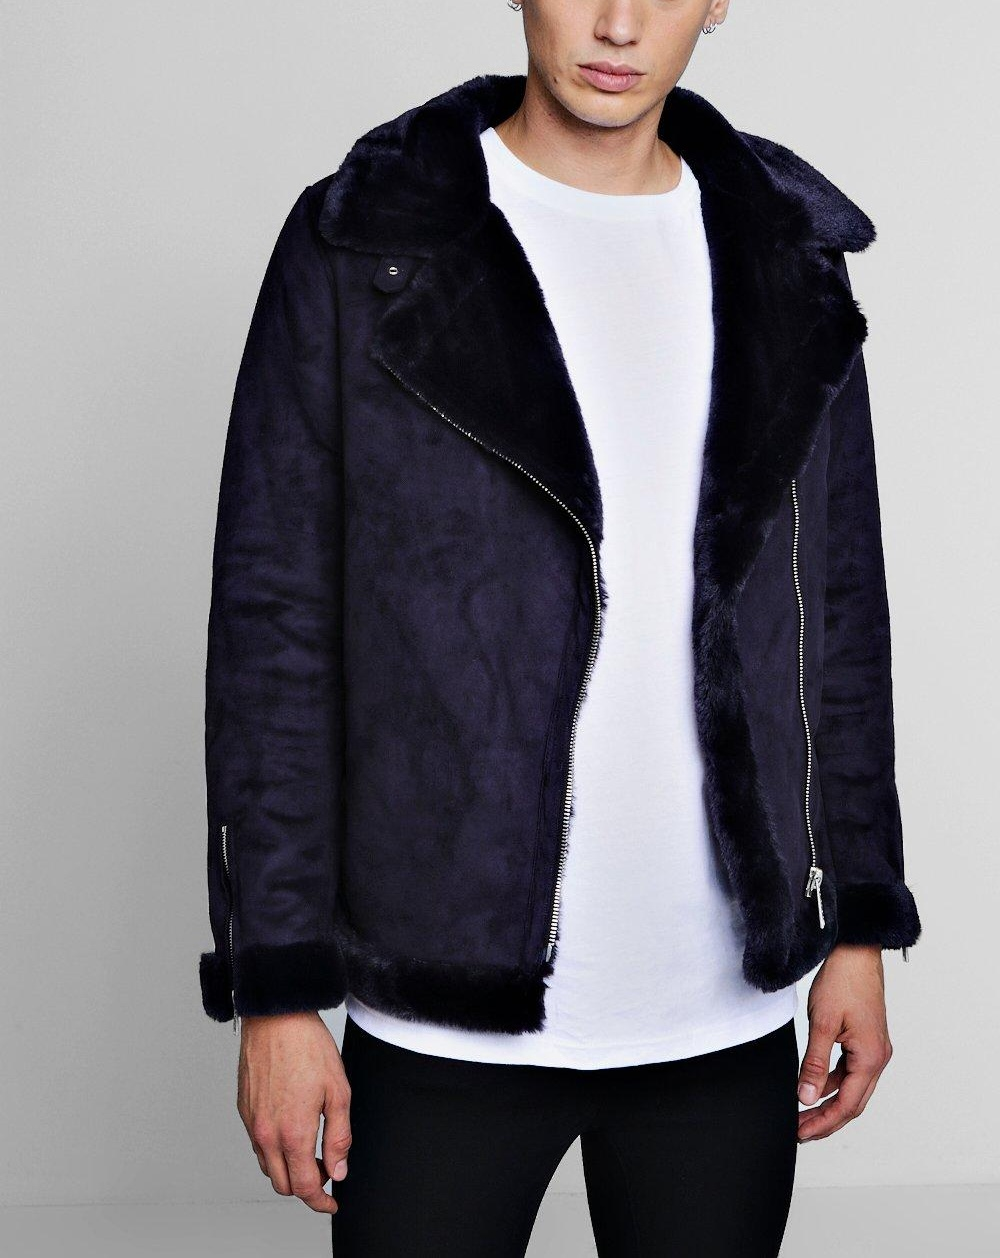 boohooMAN navy Faux Fur Lined Suede Aviator